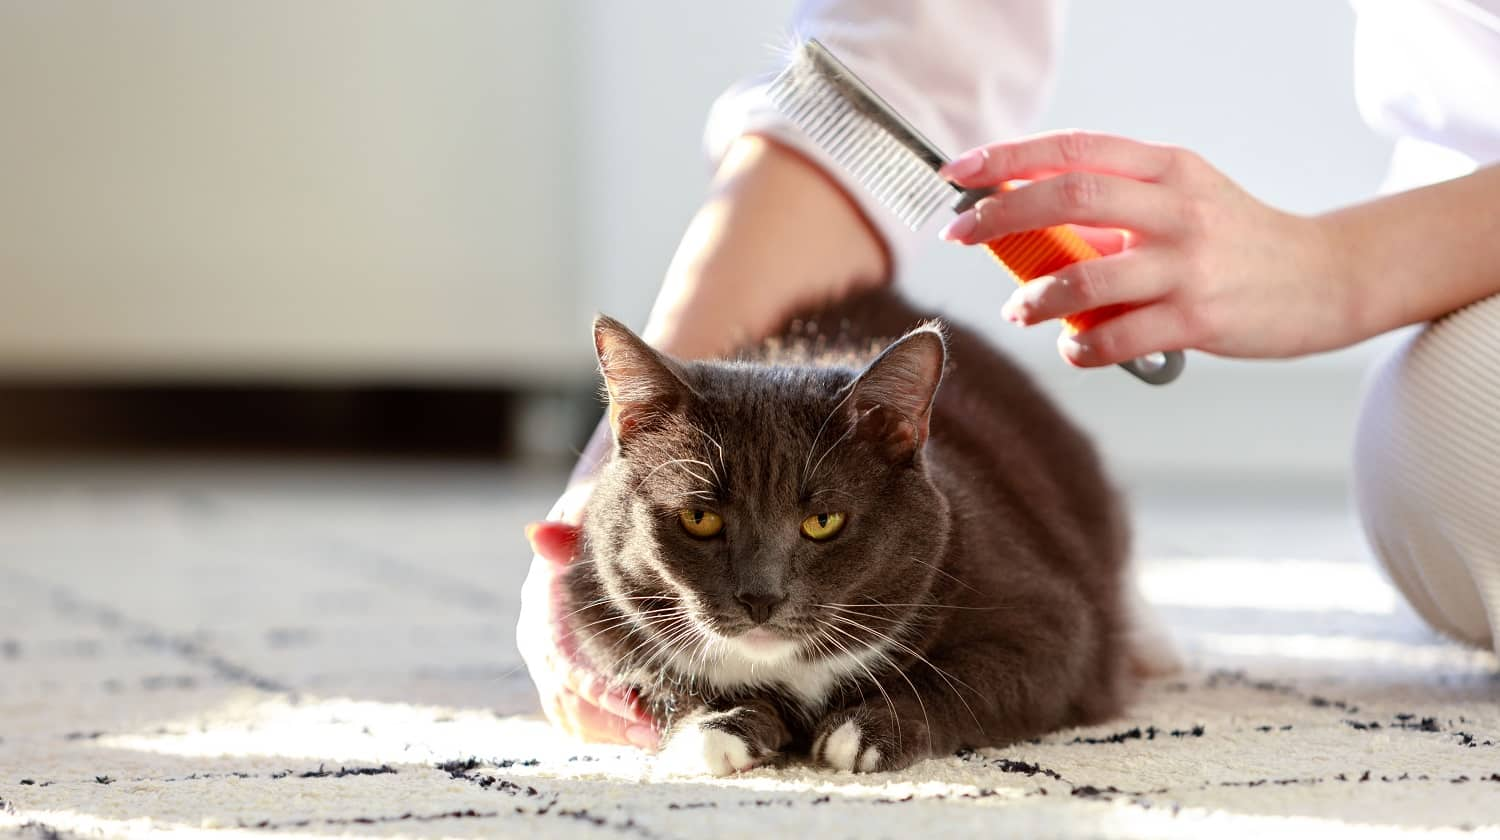 Woman owner combing, scratching her fluffy black cat, close up.